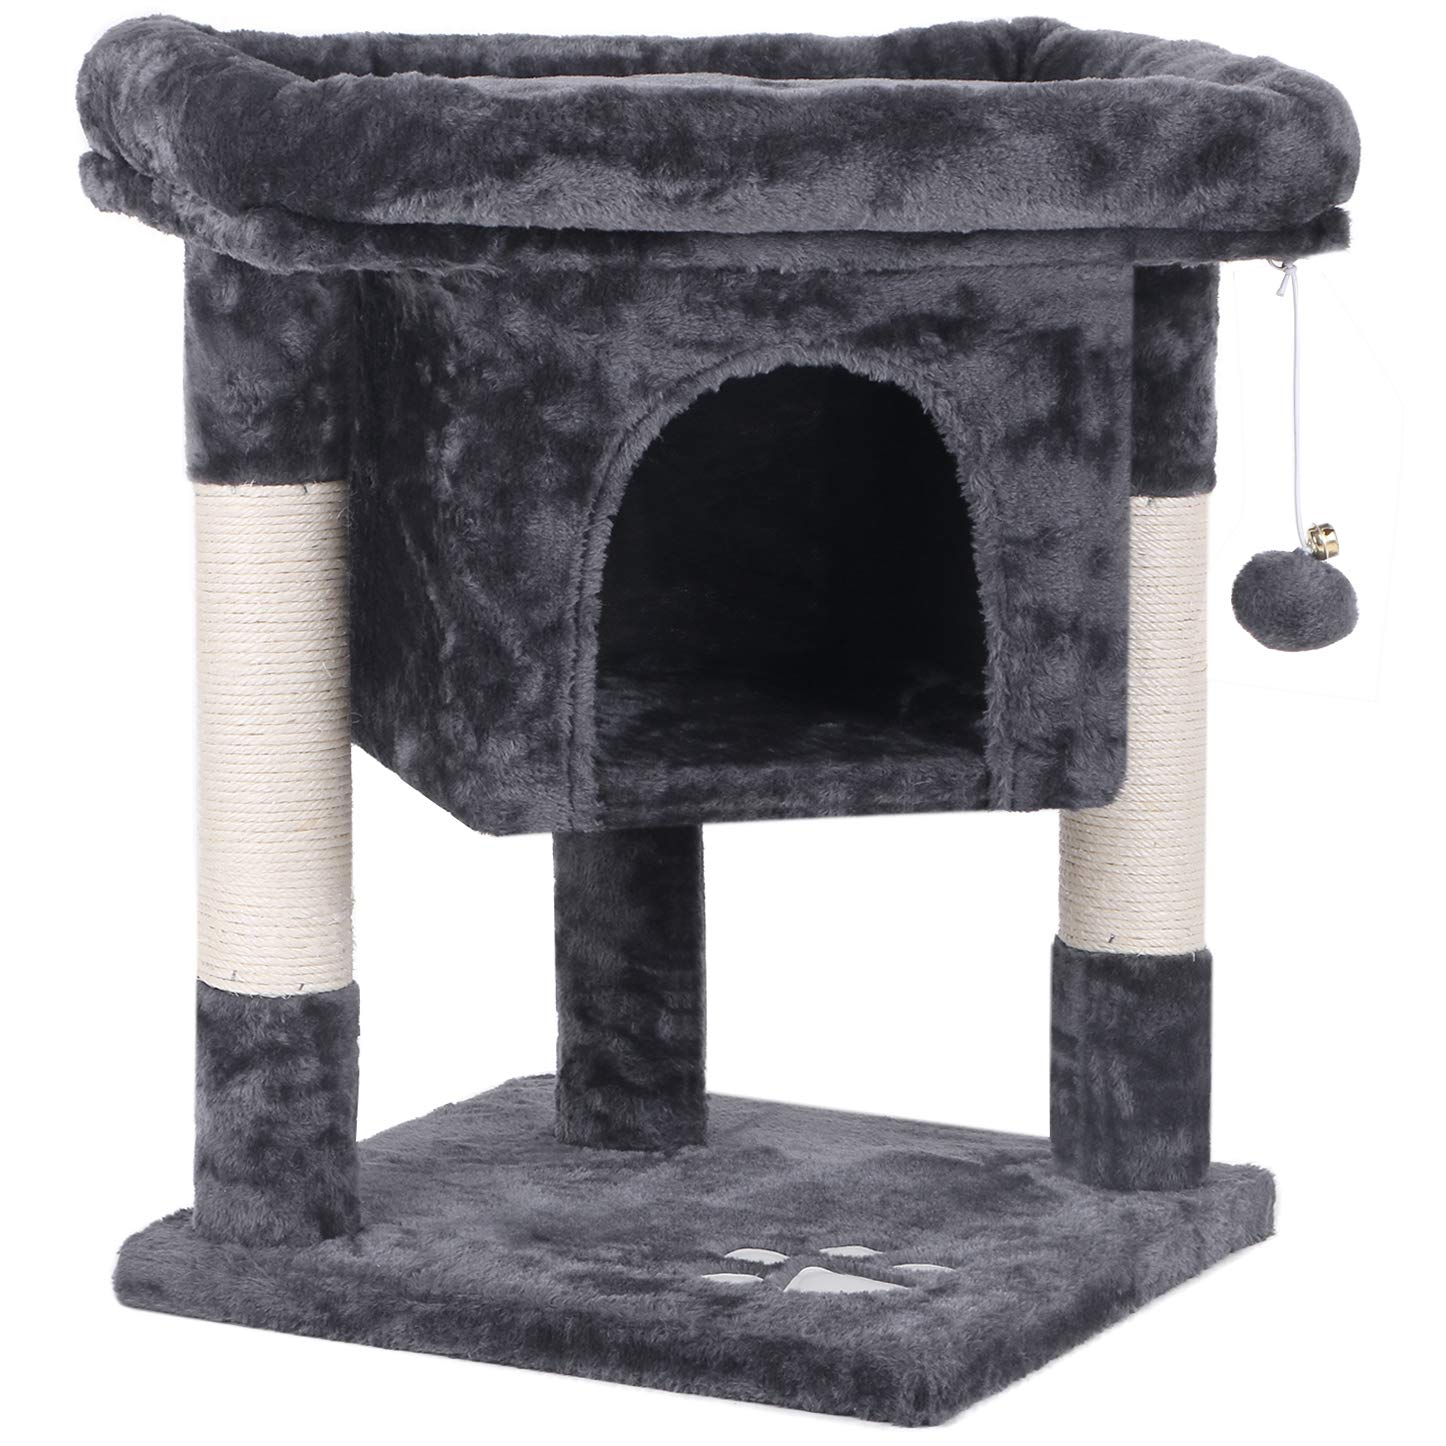 BEWISHOME Cat Tree Cat House Cat Condo with Sisal Scratching Posts, Plush Perch, Cat Tower Furniture Cat Bed Kitty Activity Center Kitten Play House, Grey MMJ08B by BEWISHOME